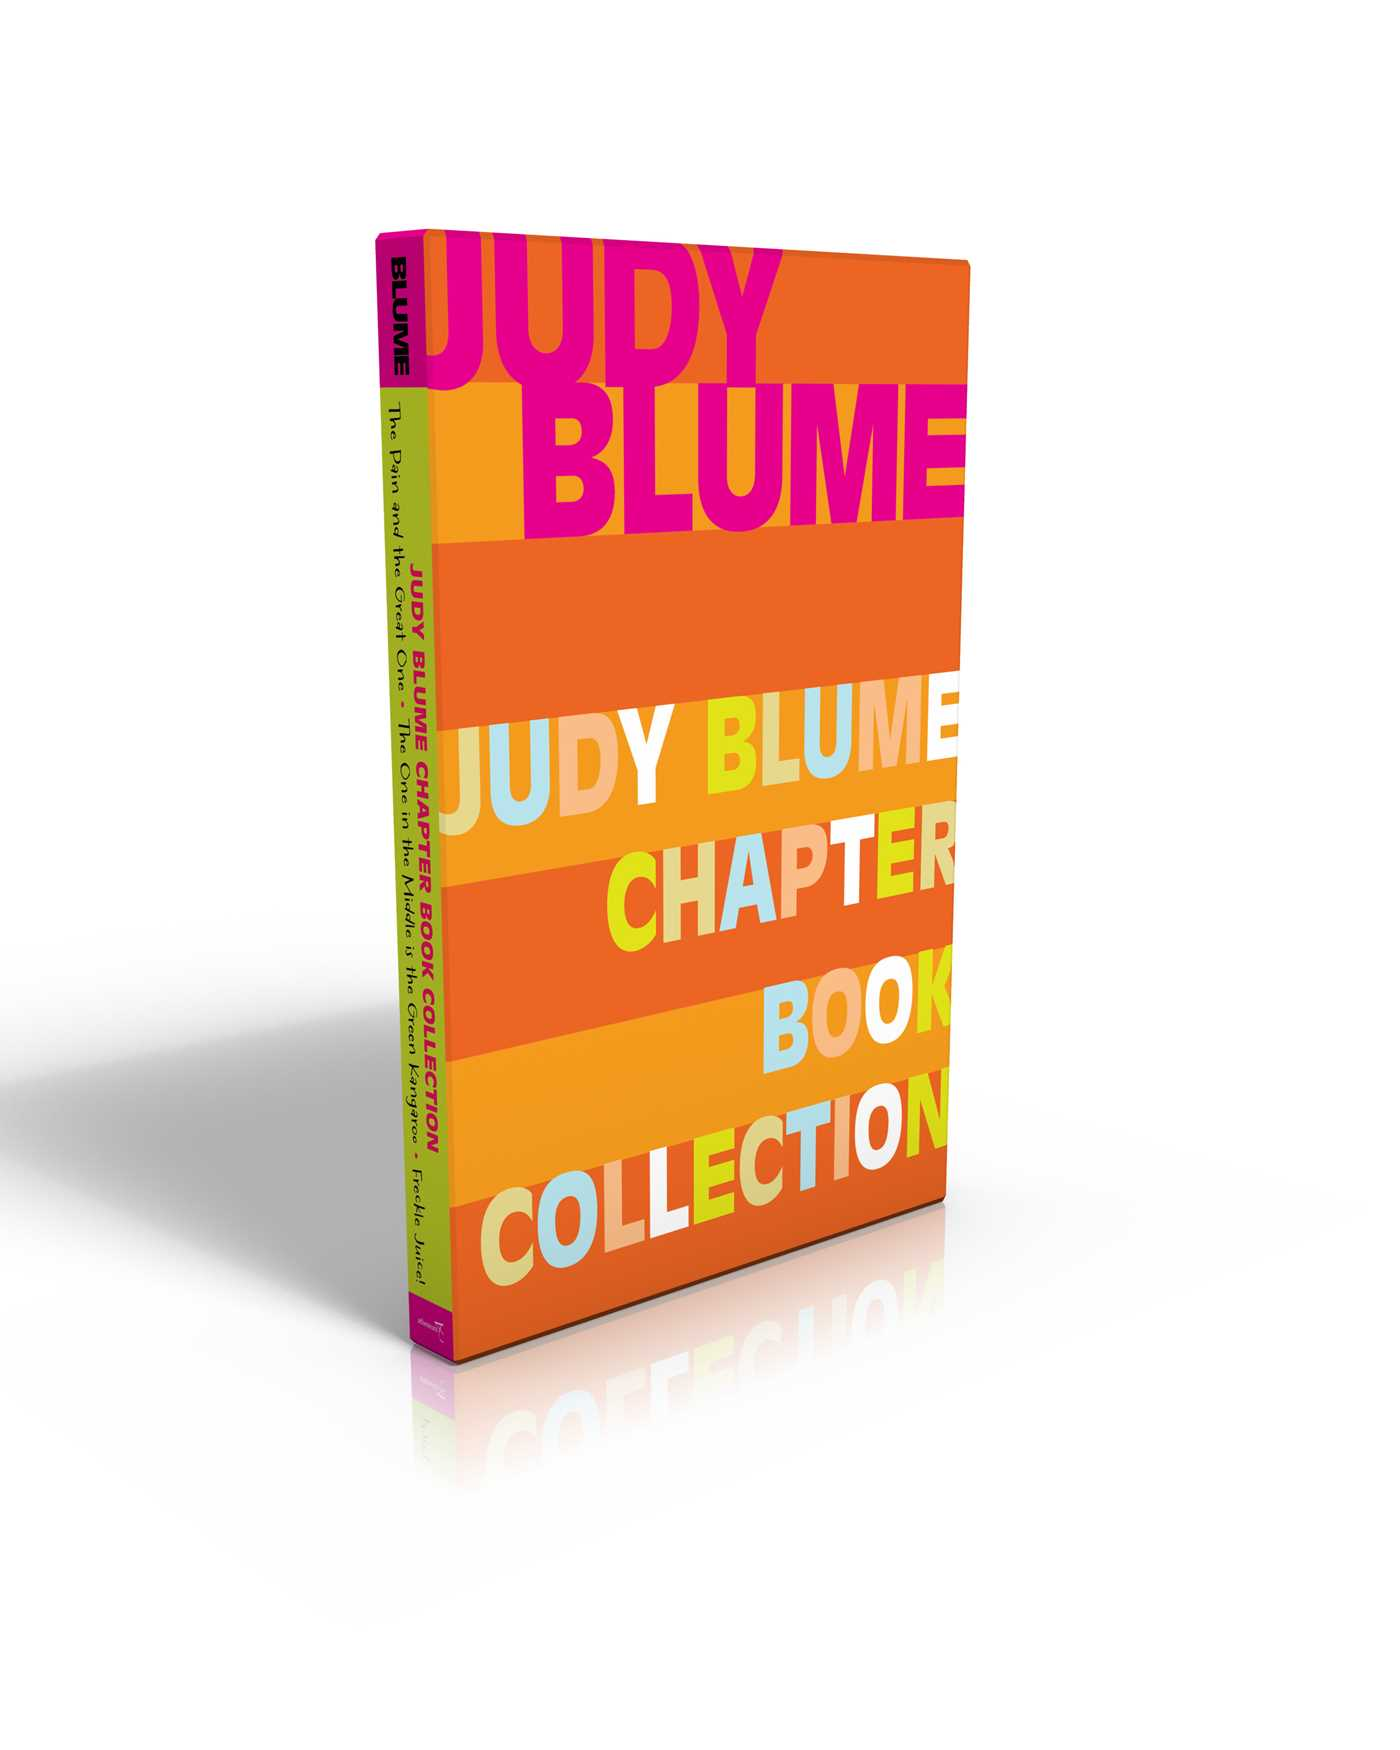 Judy blume chapter book collection 9781481485708 hr